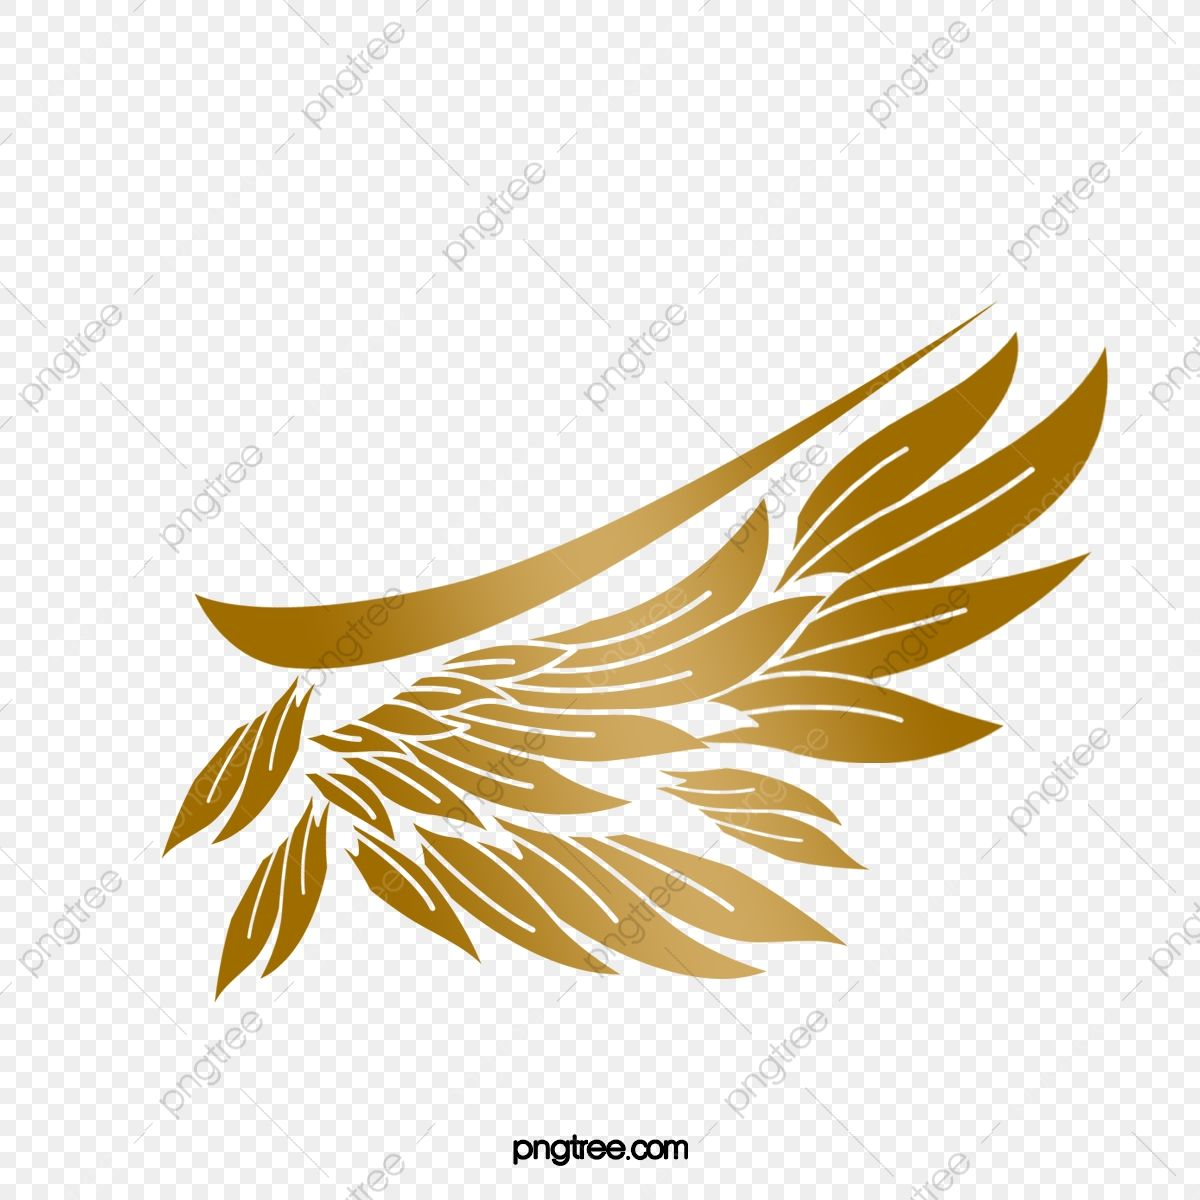 Golden Wings Wings Clipart Soar Fly Png Transparent Clipart Image And Psd File For Free Download Tshirt Printing Design Golden Wings Clip Art